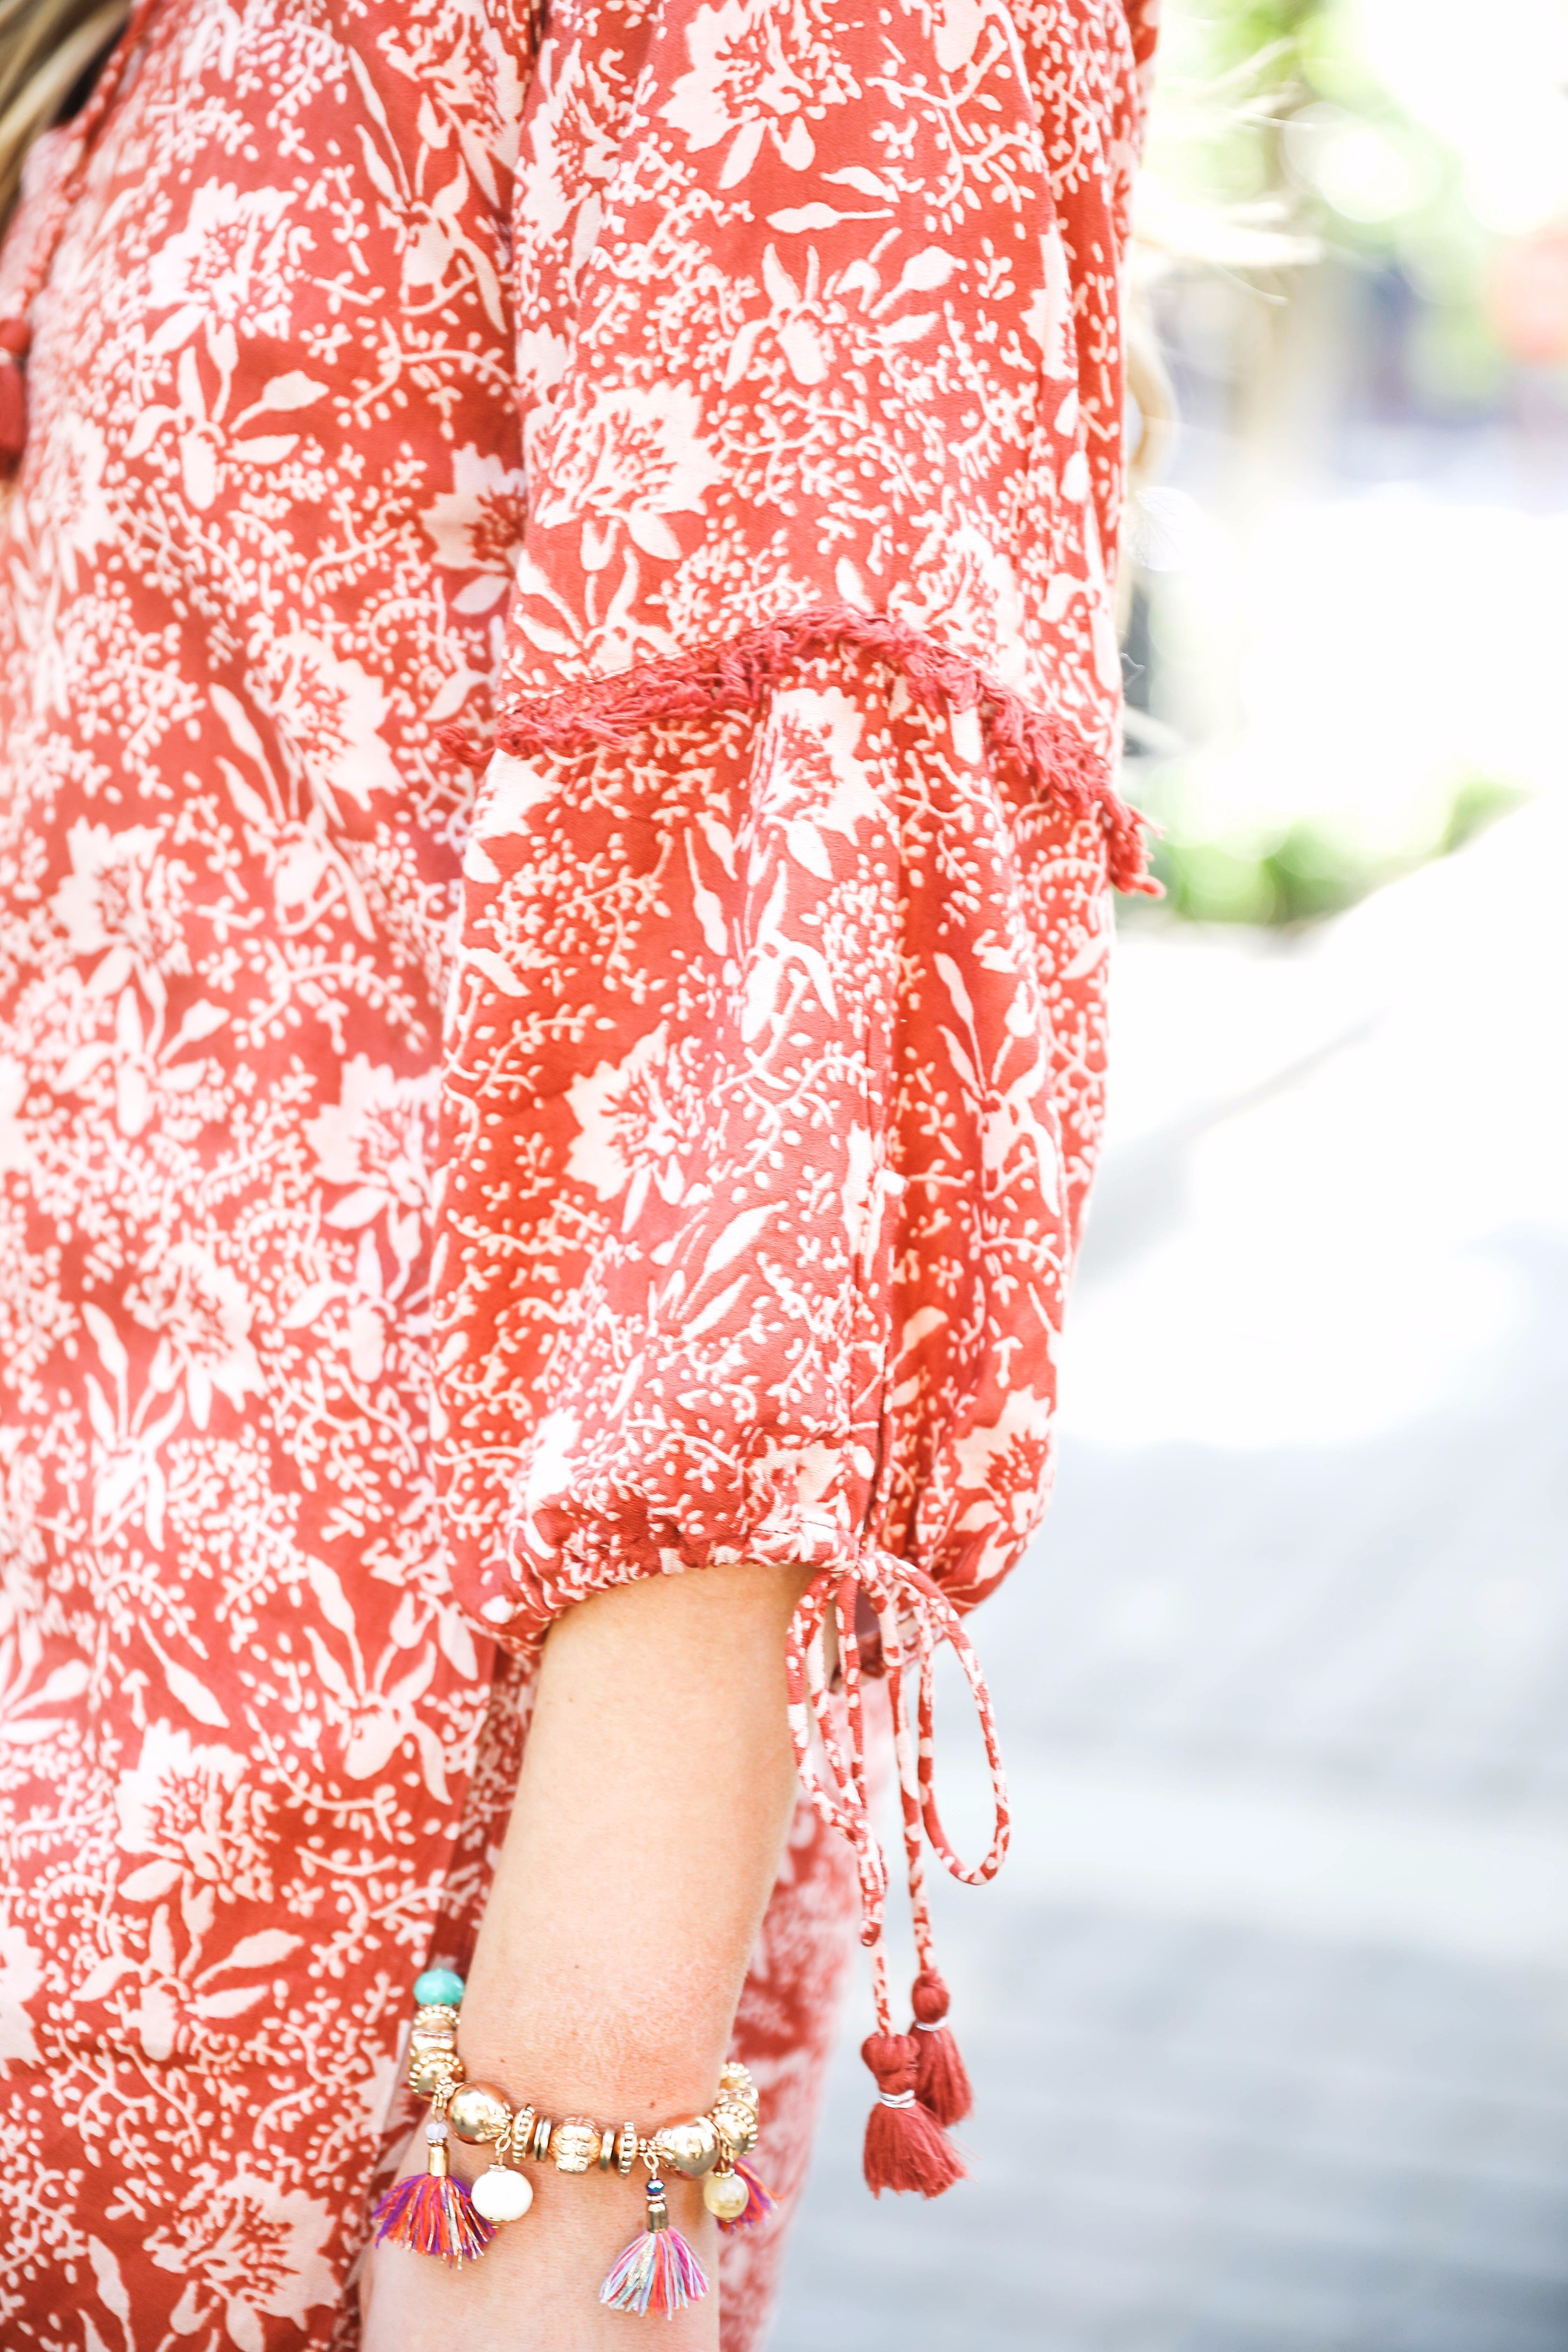 Tassel and ruffle puffy sleeve coral dress with brown Marc fisher wedges by Lauren Lindmark on daily dose of charm fashion blog dailydoseofcharm.com